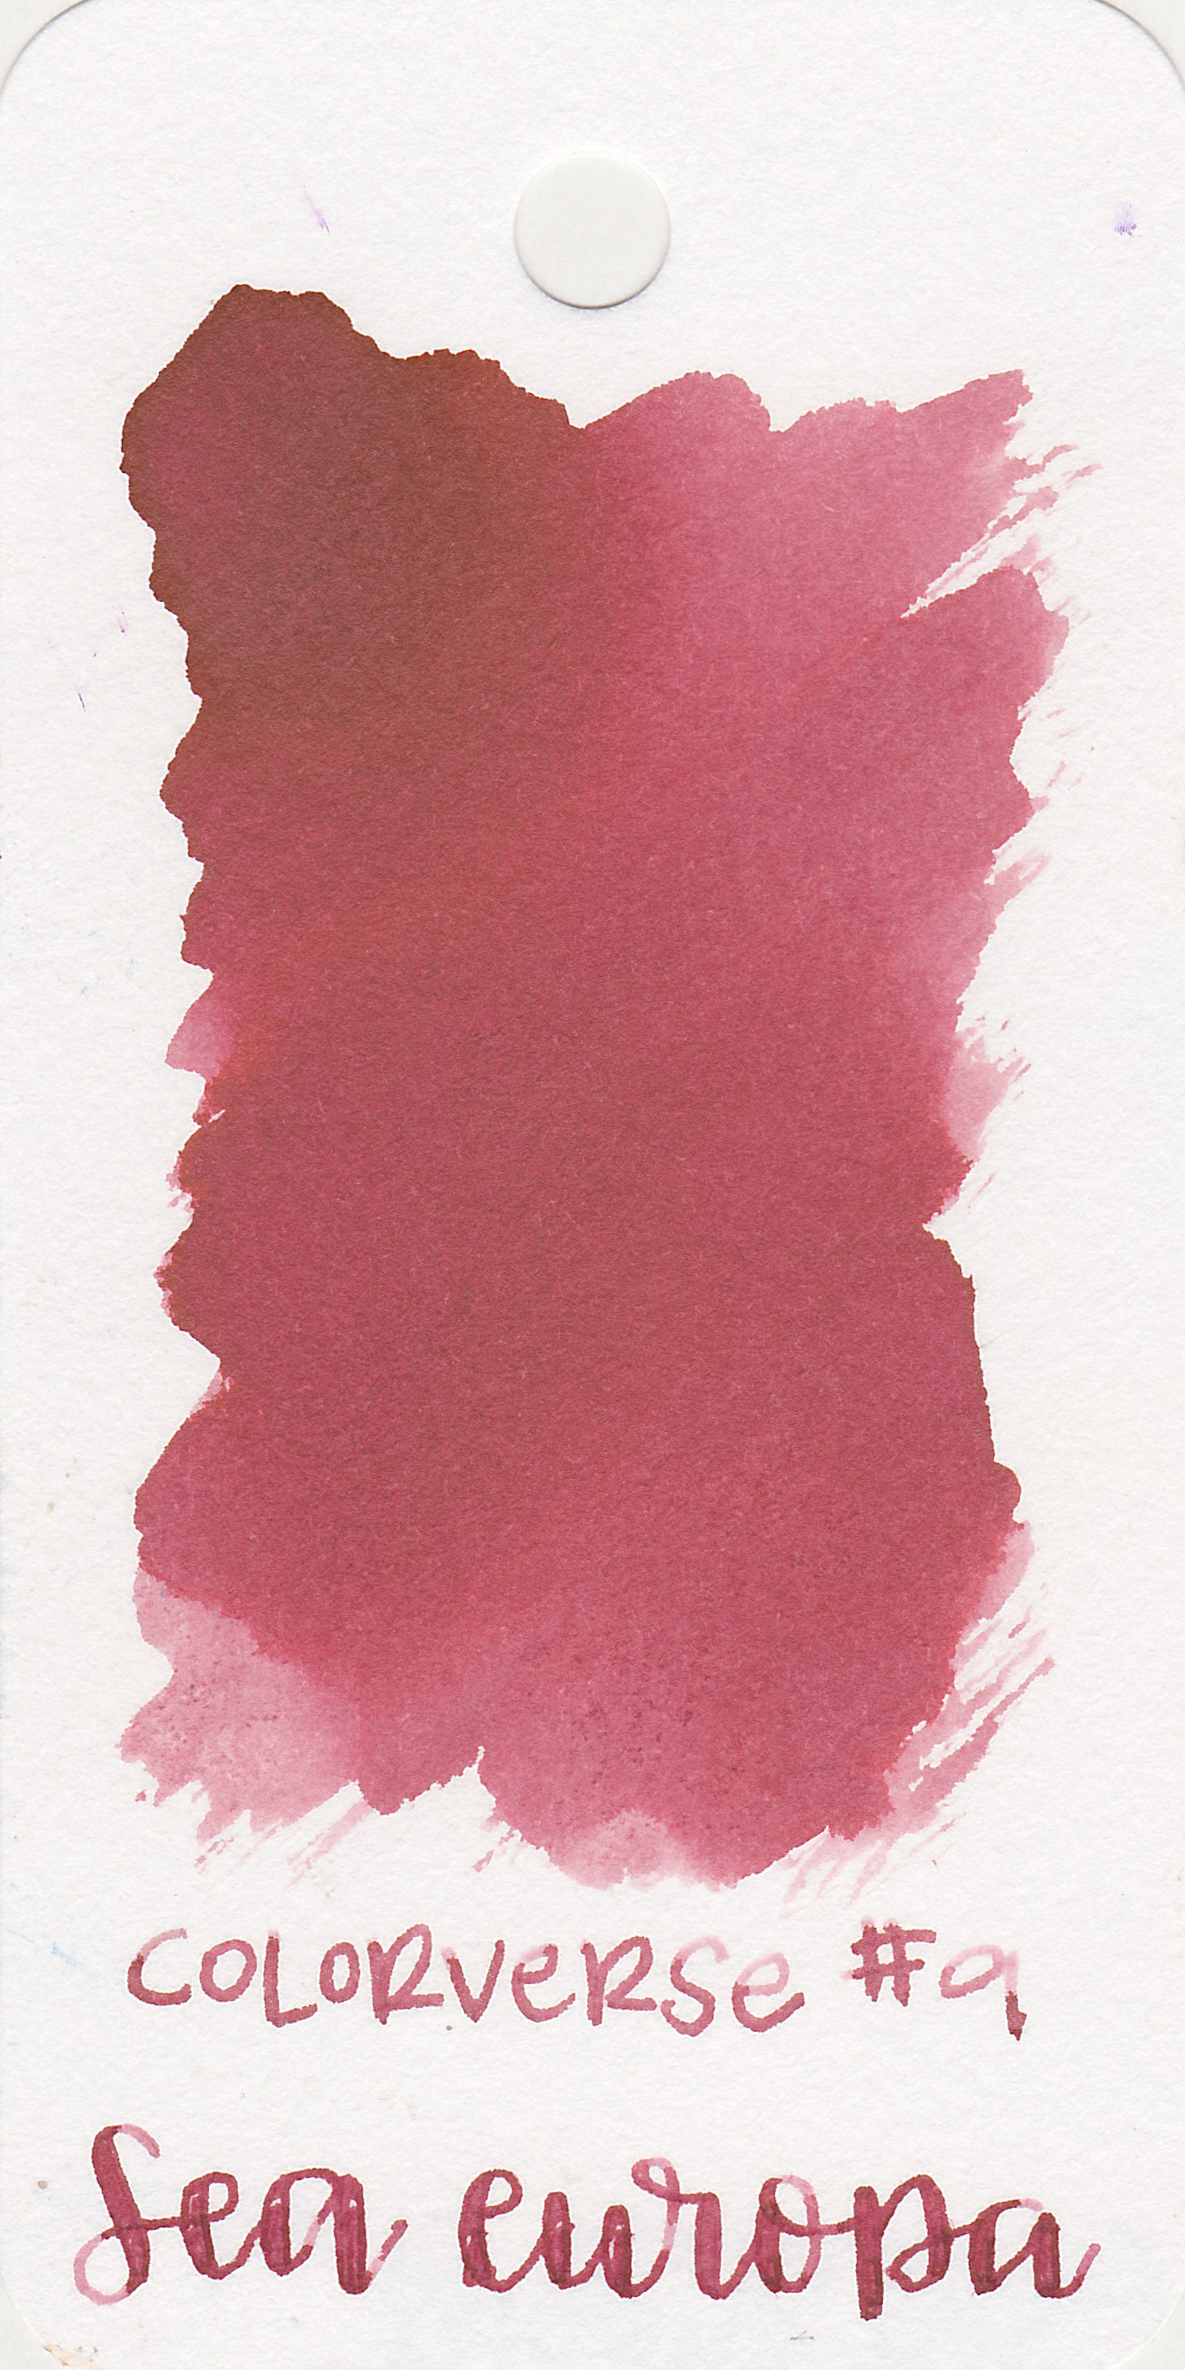 The color: - Sea Europa is a dusky red, pretty unsaturated.